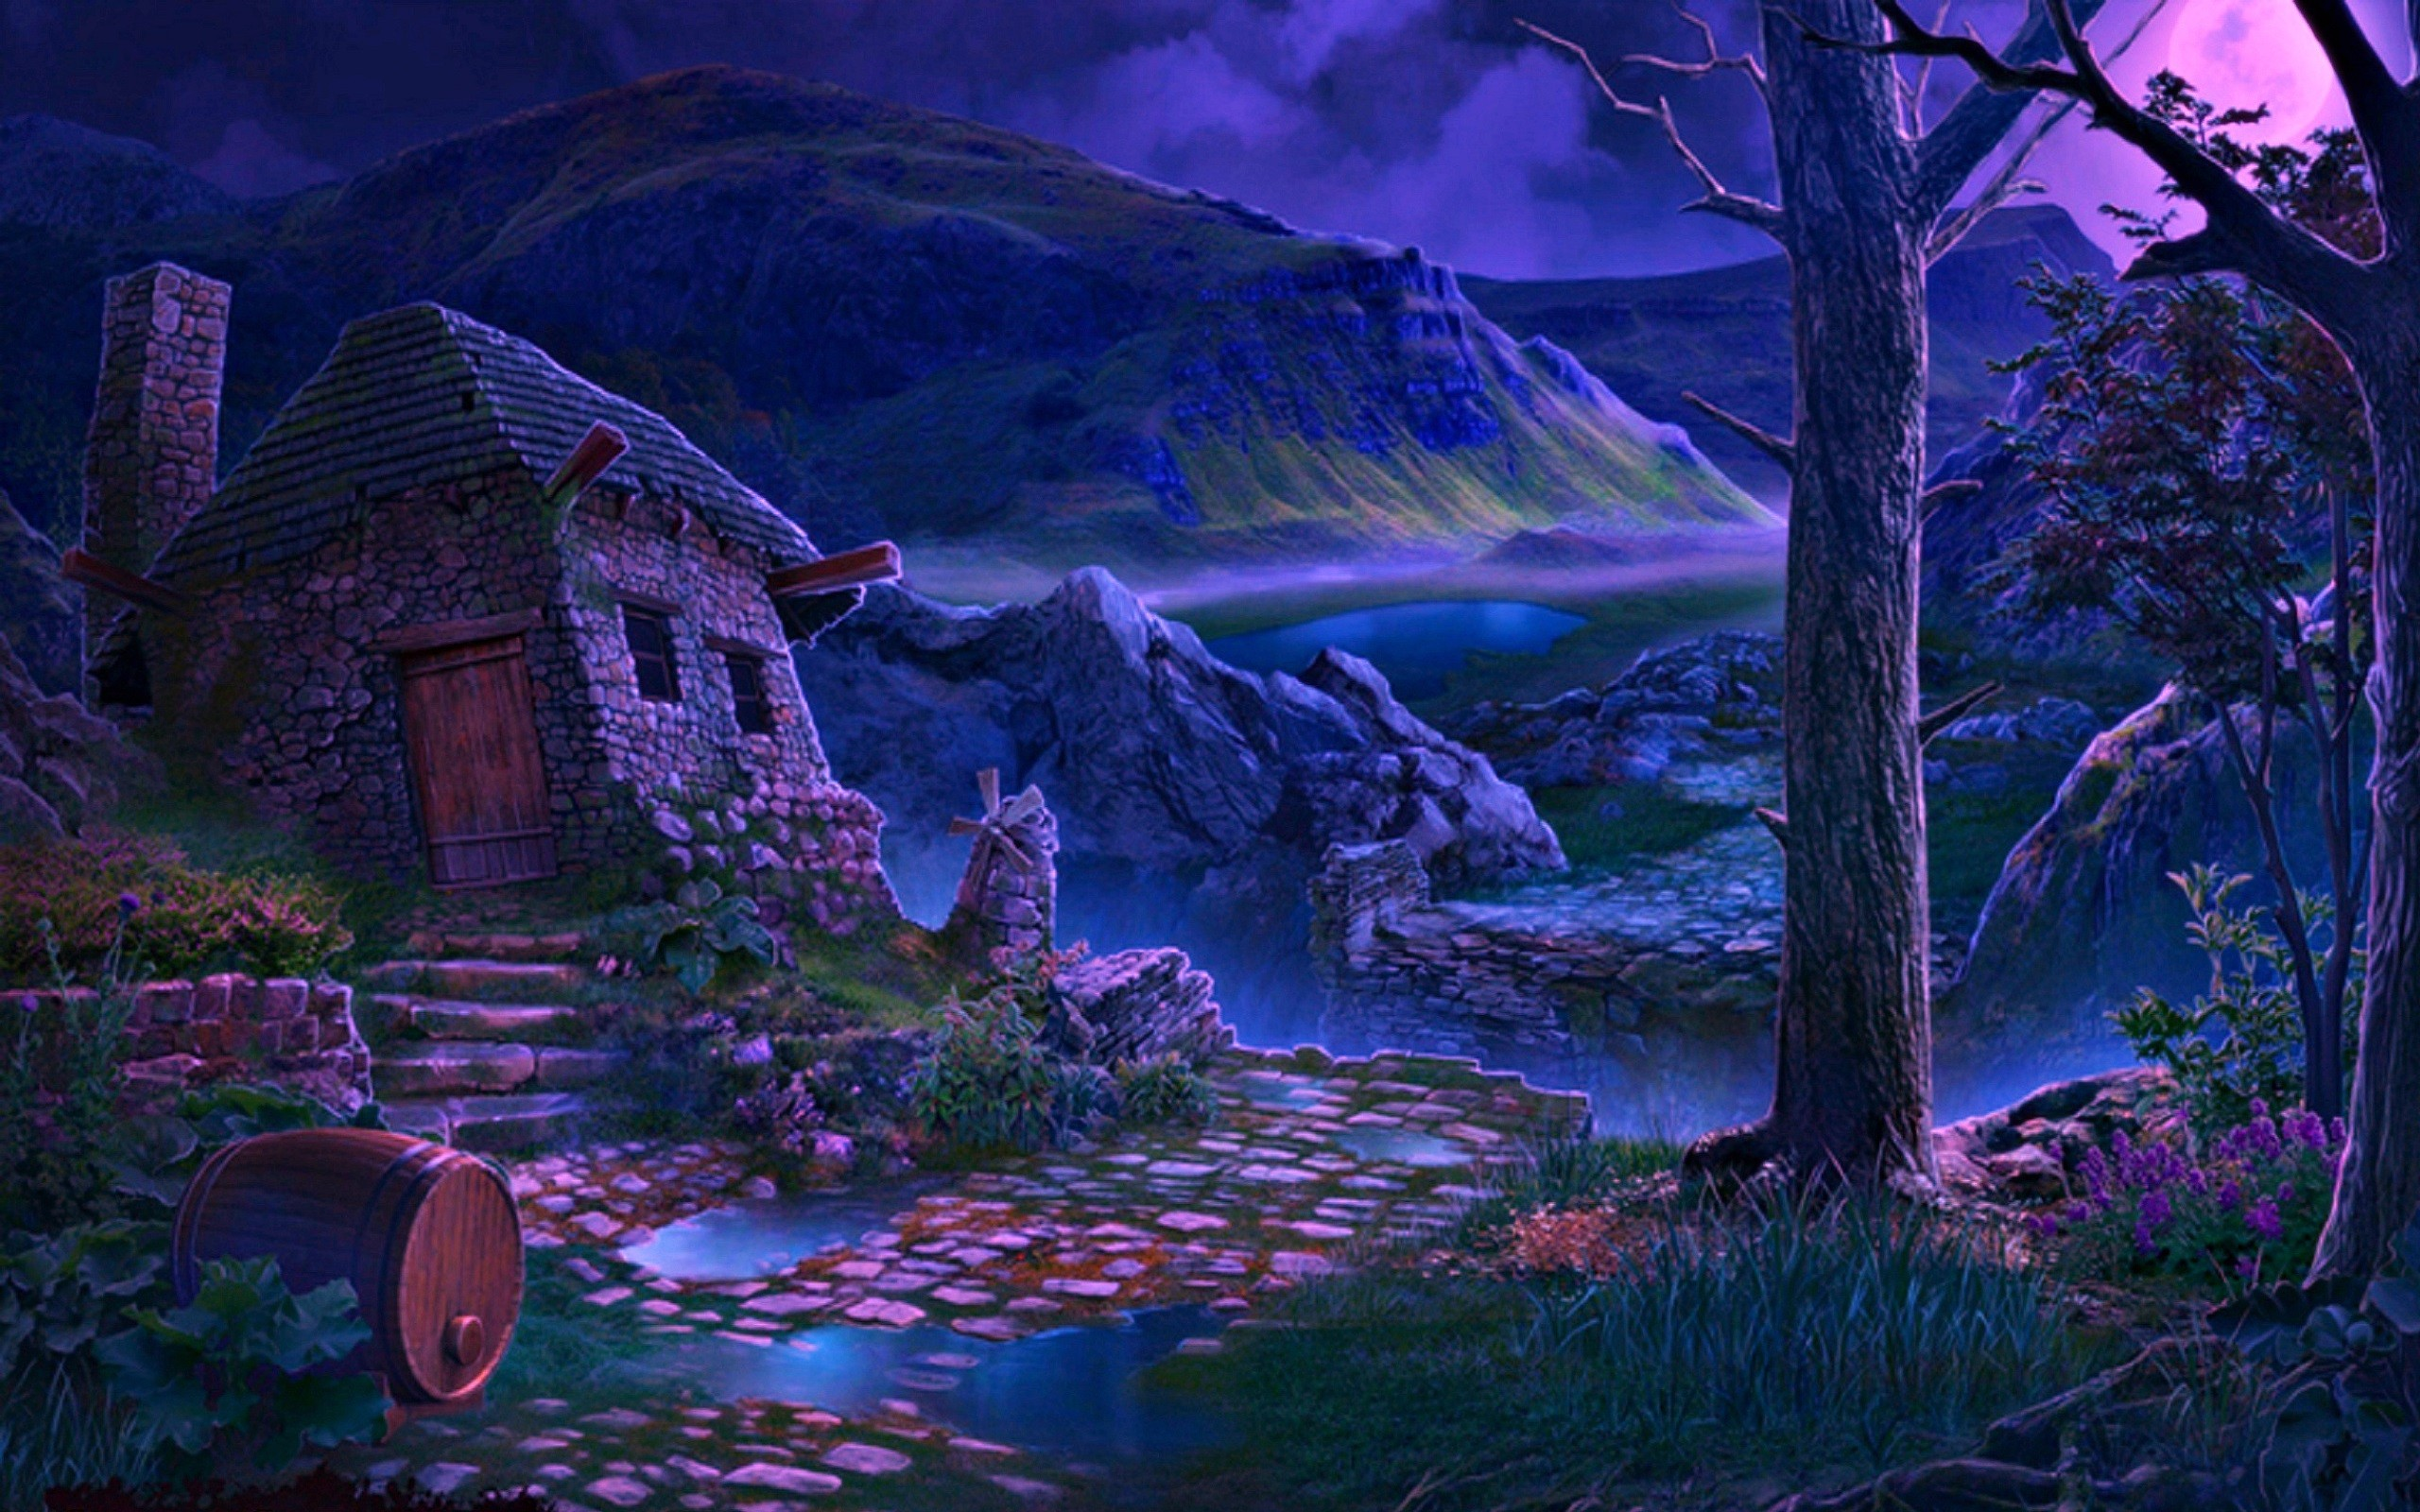 House In Fantasy Woods Hd Wallpaper Background Image 2560x1600